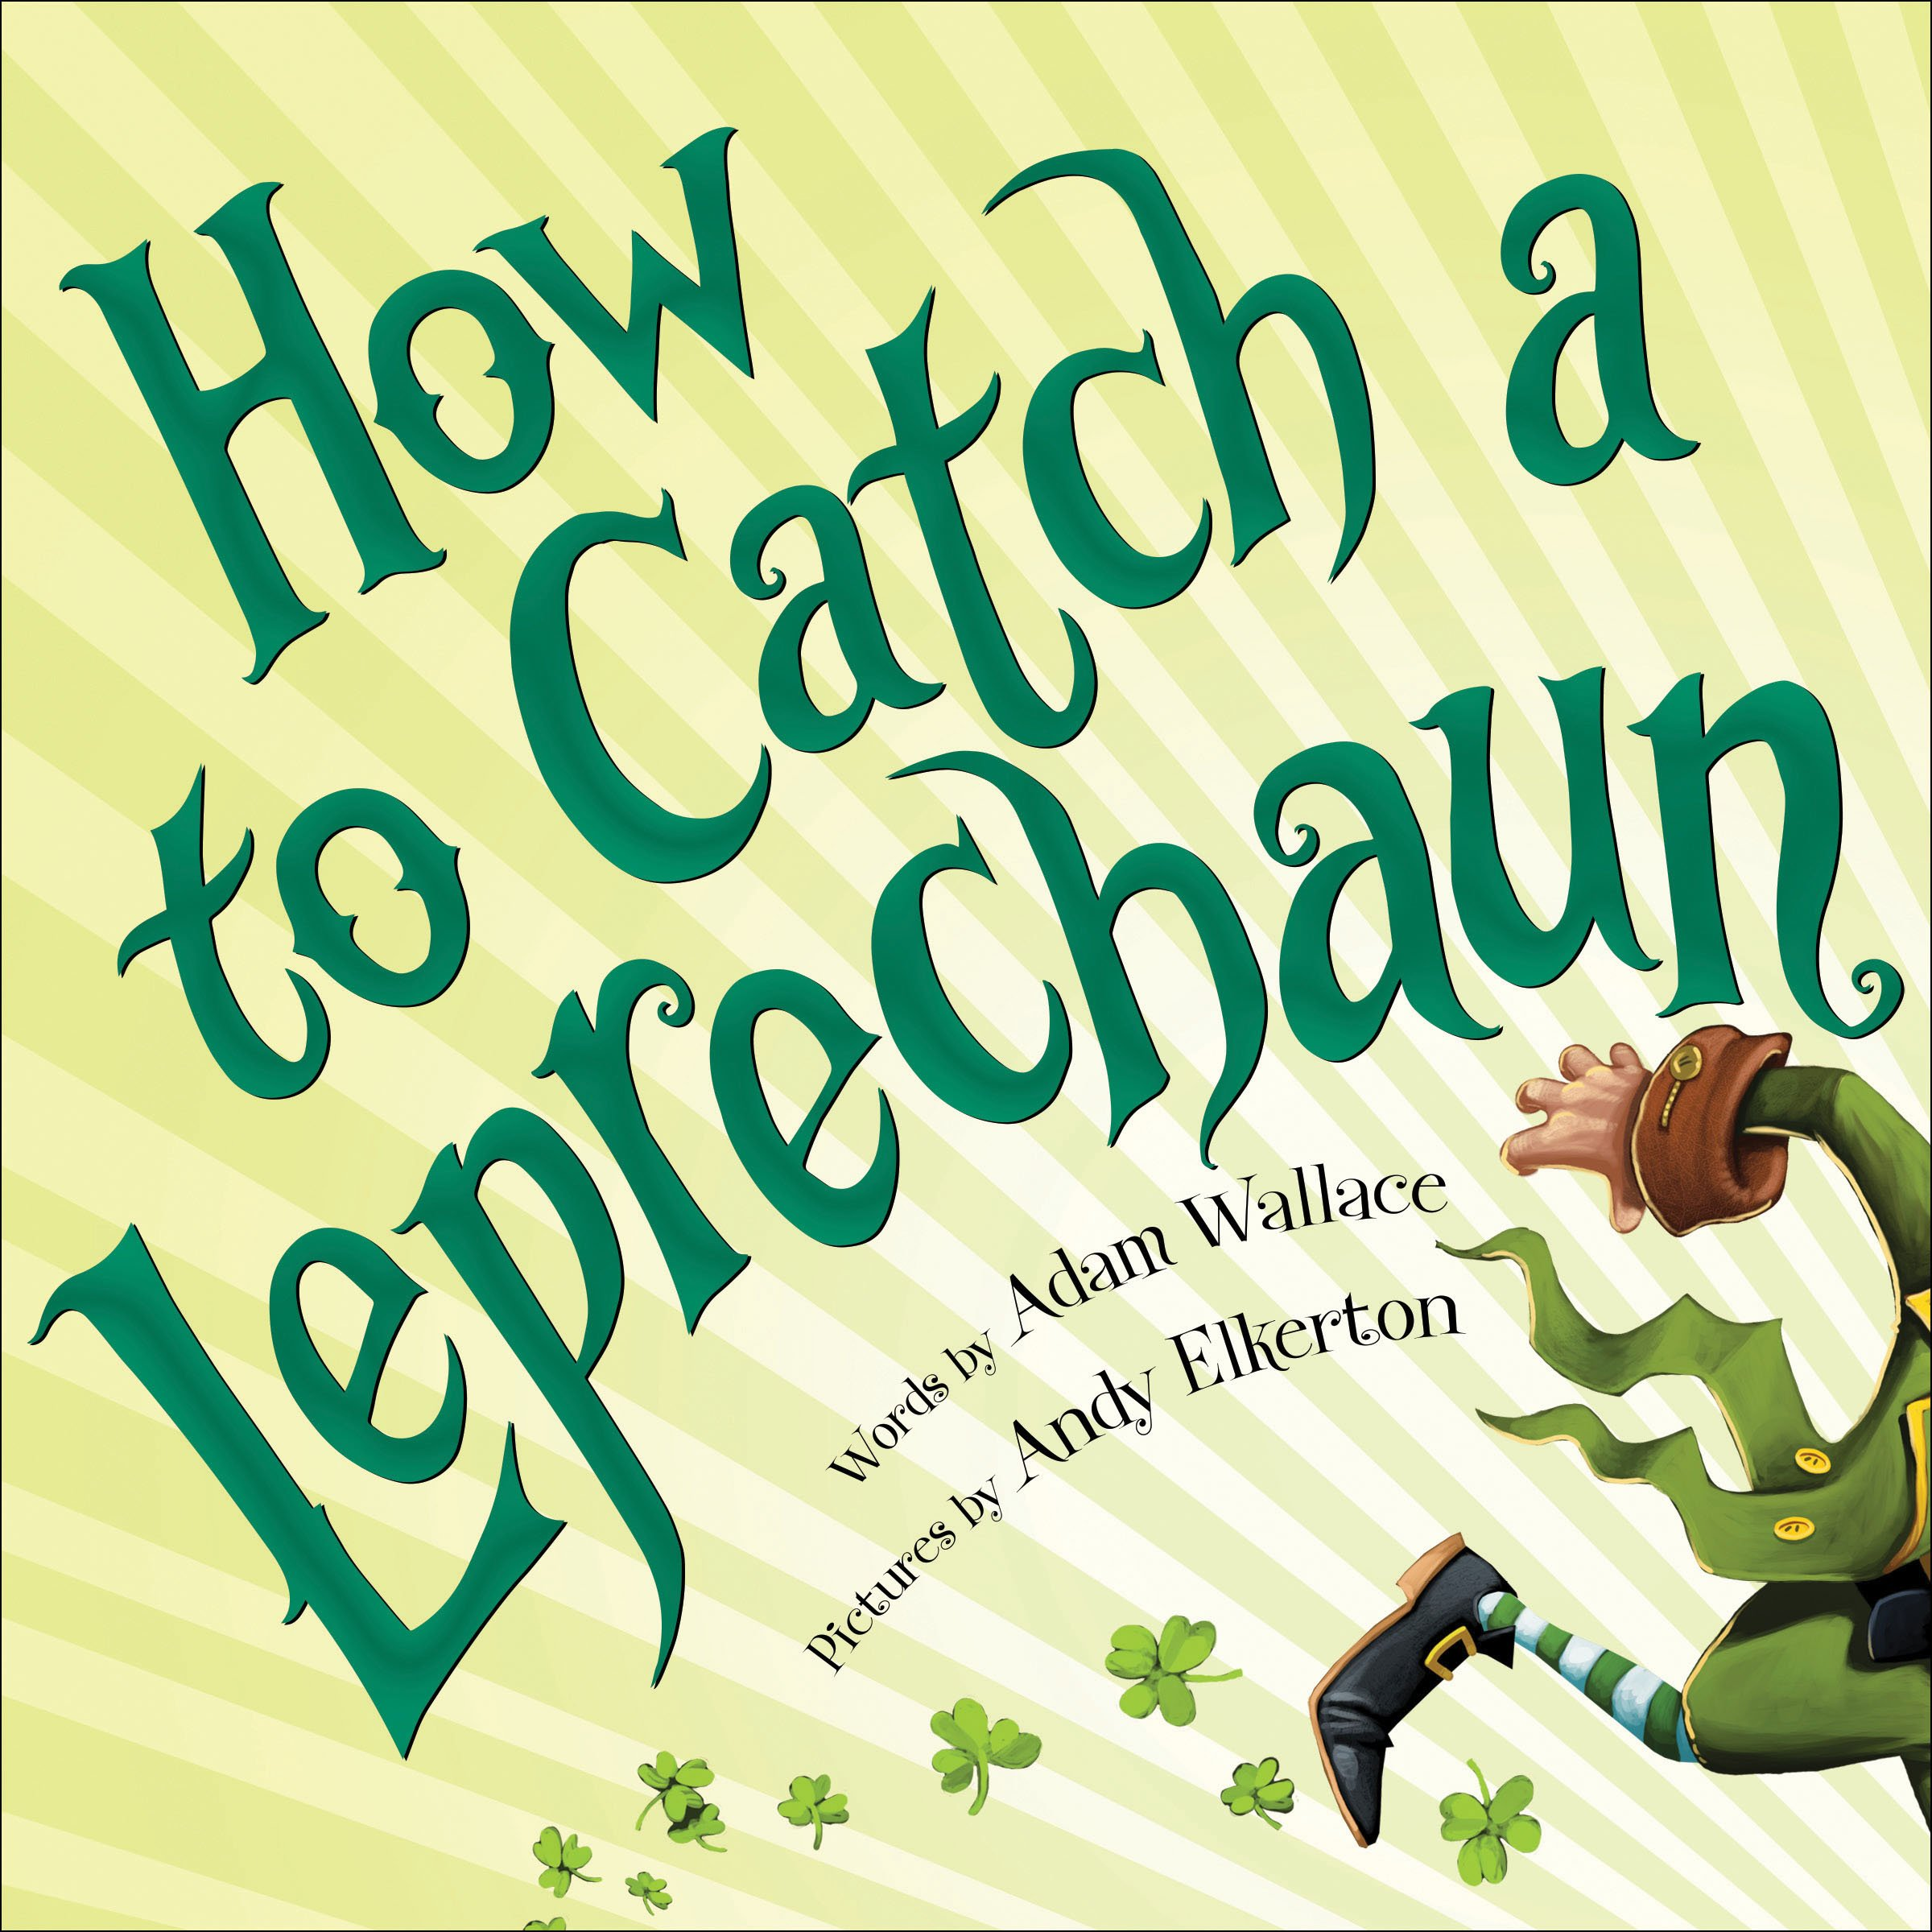 St Patrick's Day How to Catch a Leprechaun